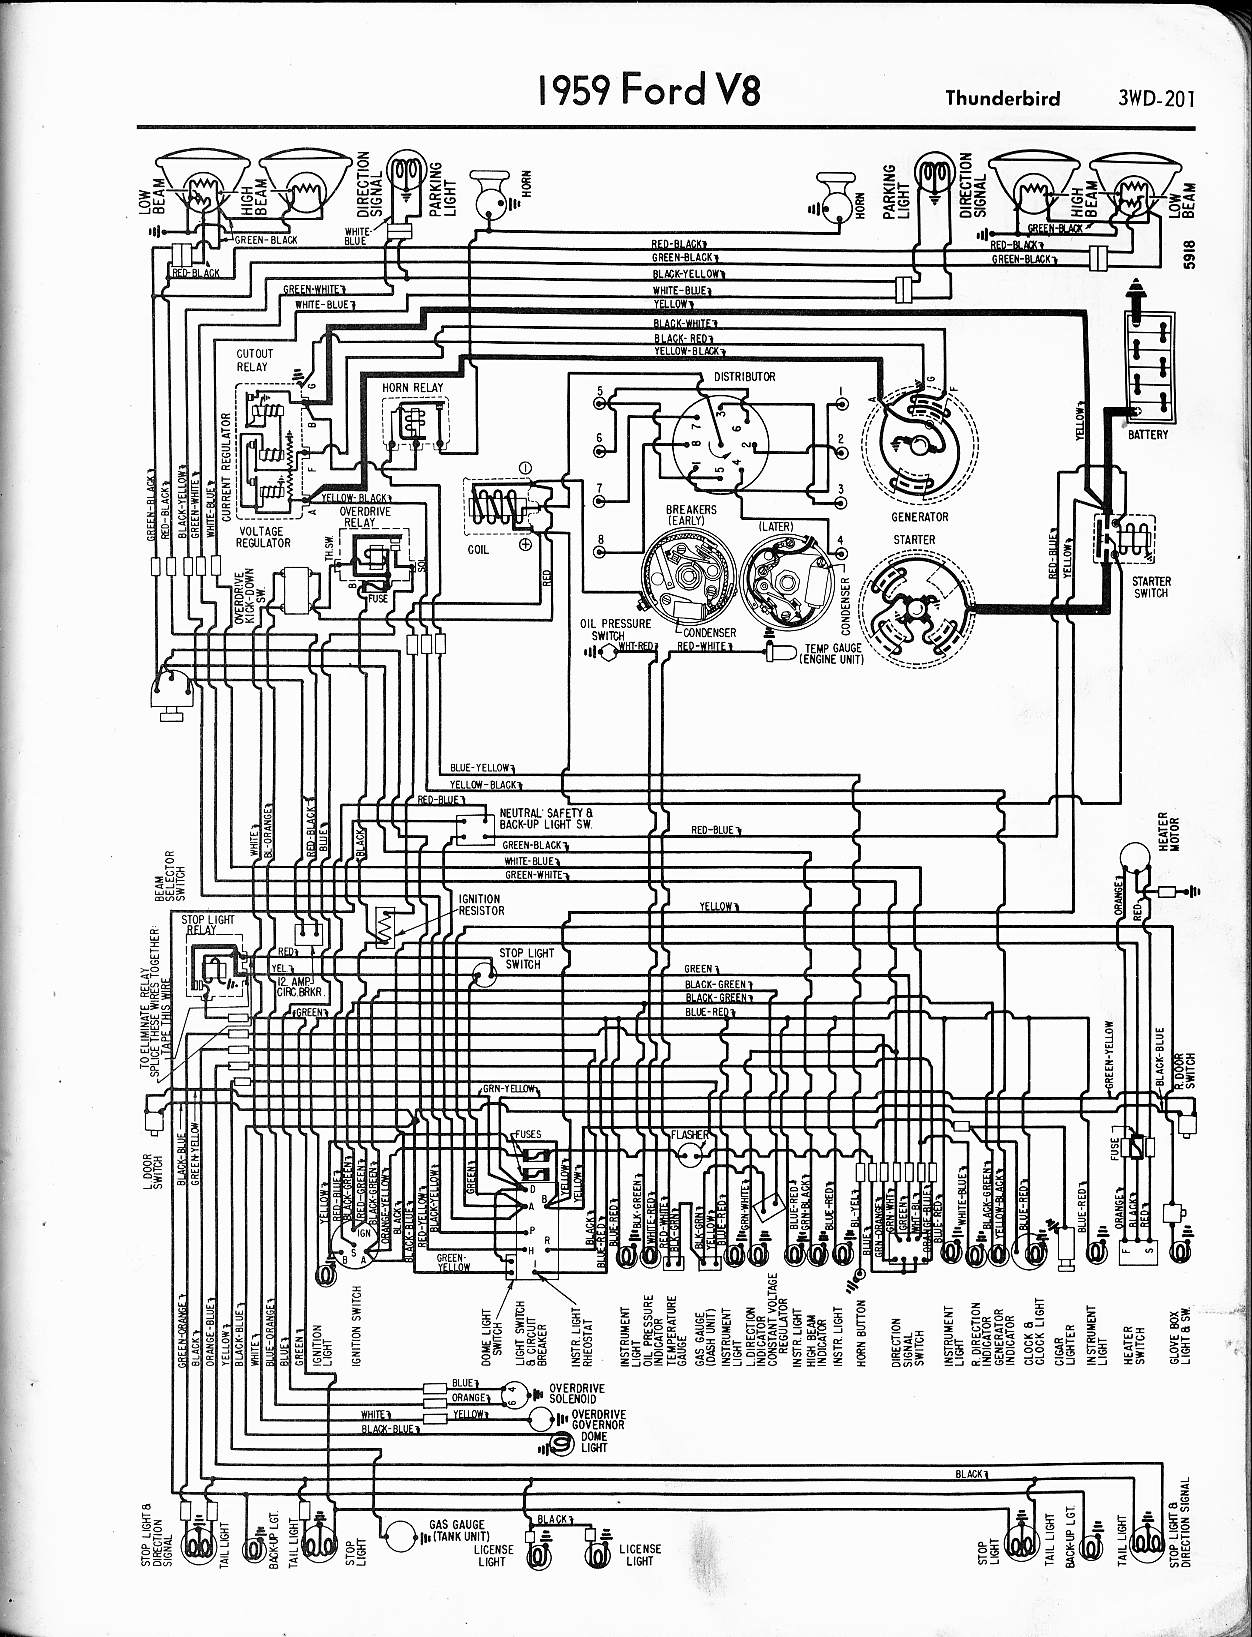 MWire5765 201 57 65 ford wiring diagrams Ford Electrical Wiring Diagrams at virtualis.co